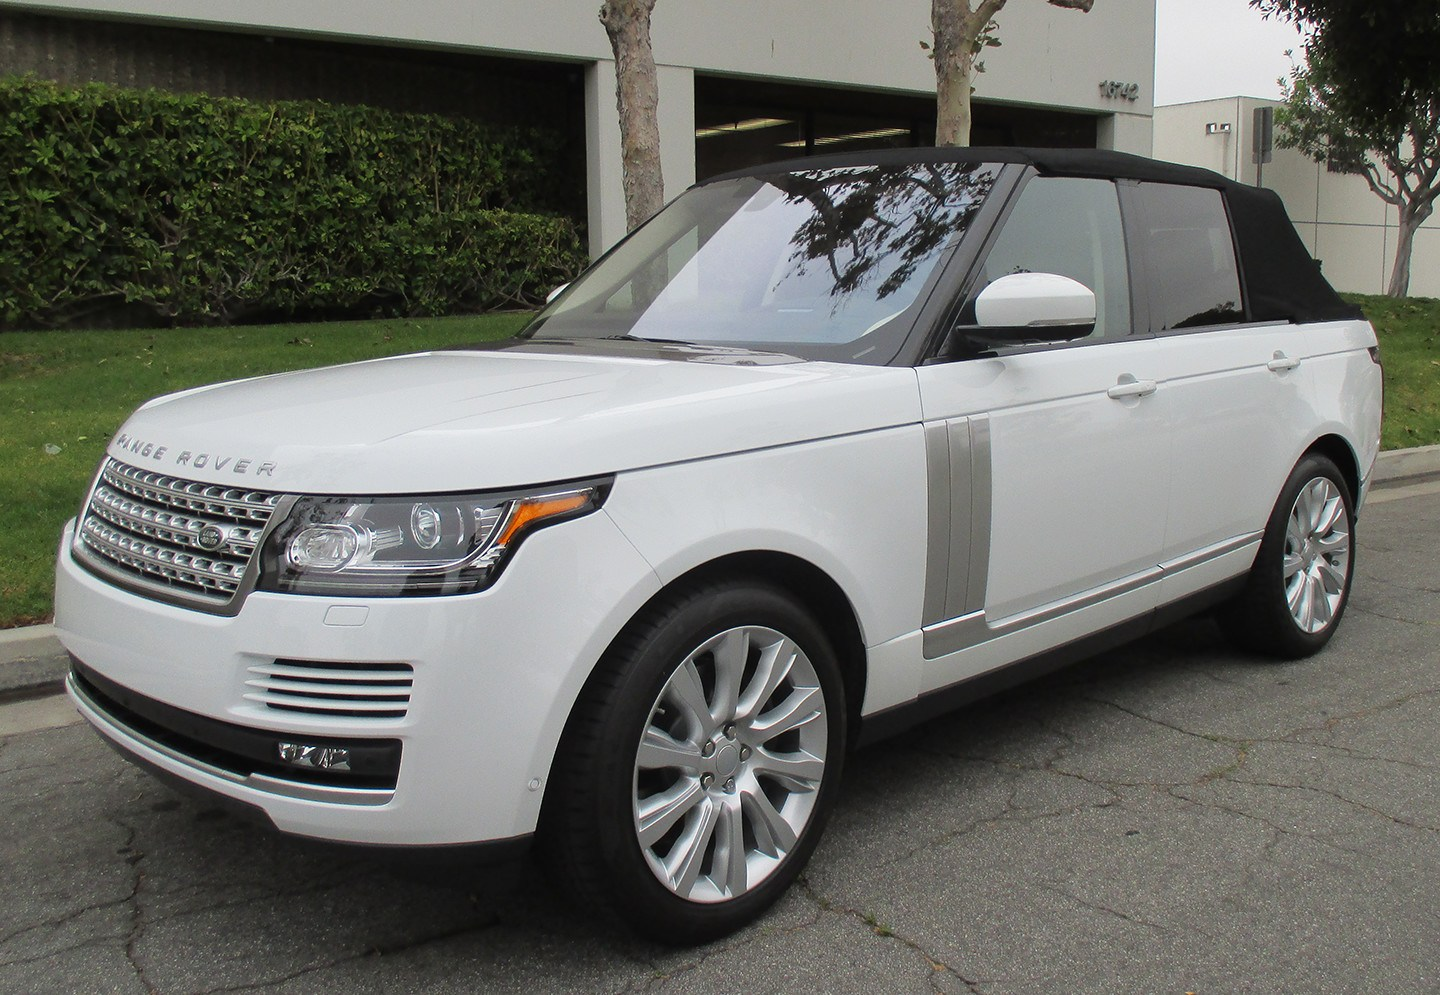 range rover convertible. Black Bedroom Furniture Sets. Home Design Ideas